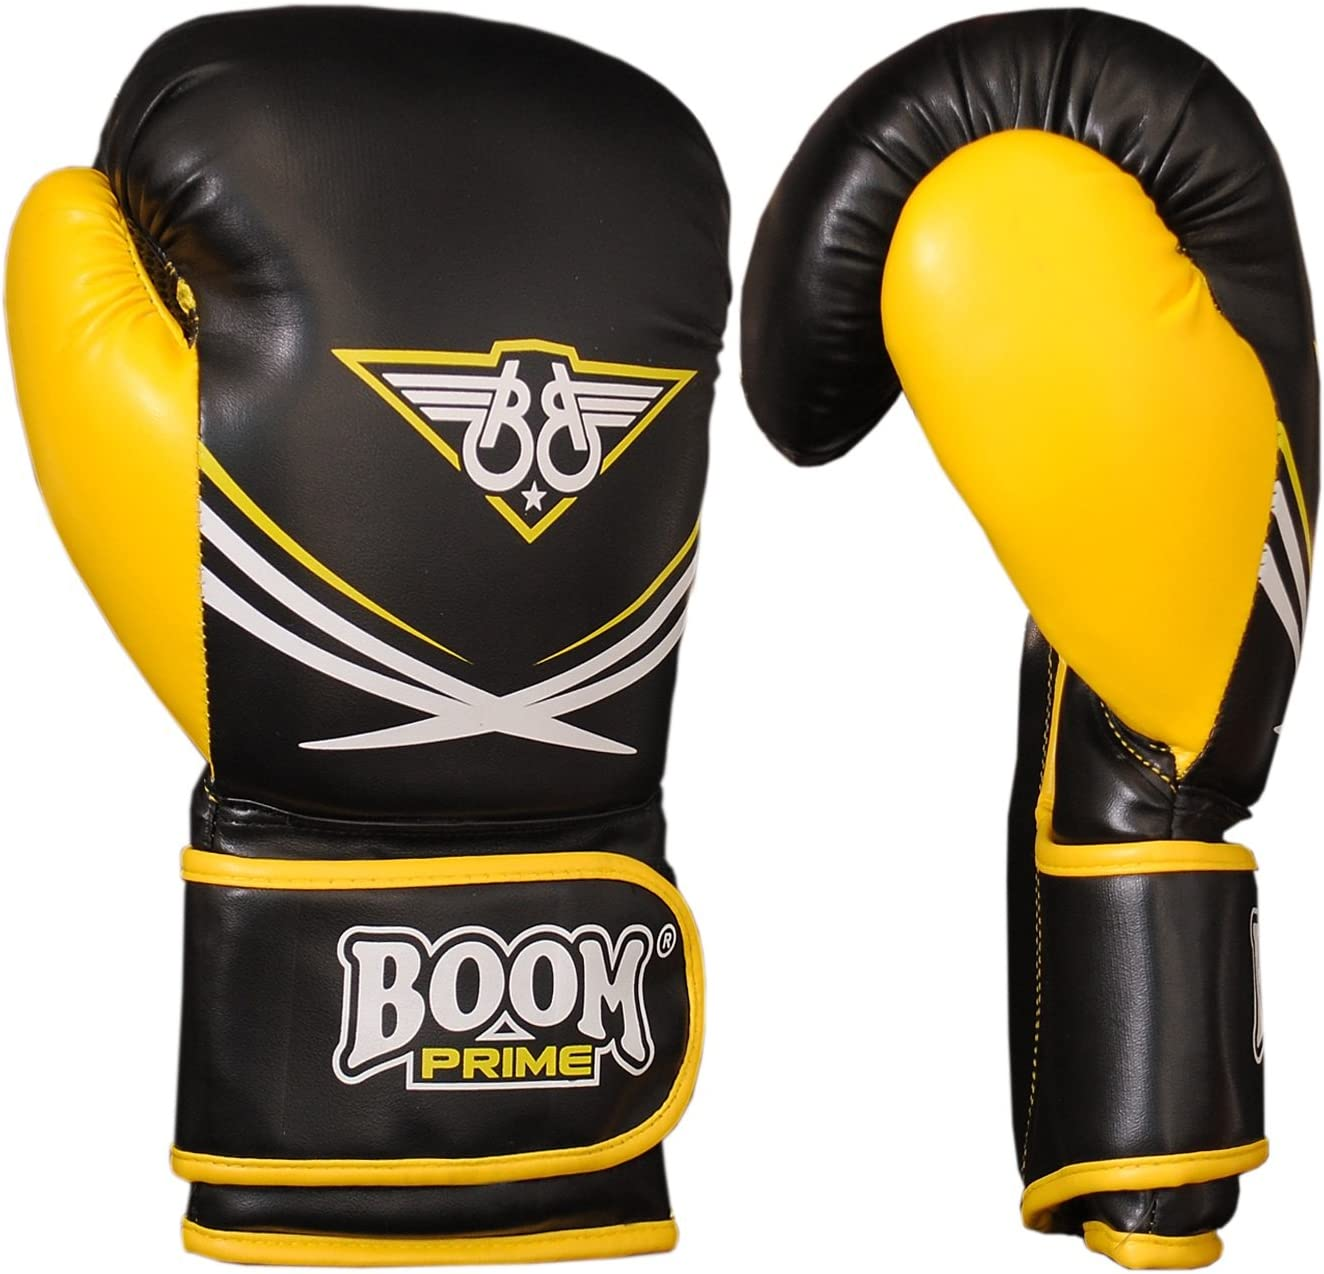 MMA Boxing Gloves Sparring Punch Bag Training Mitts 10oz to 16oz